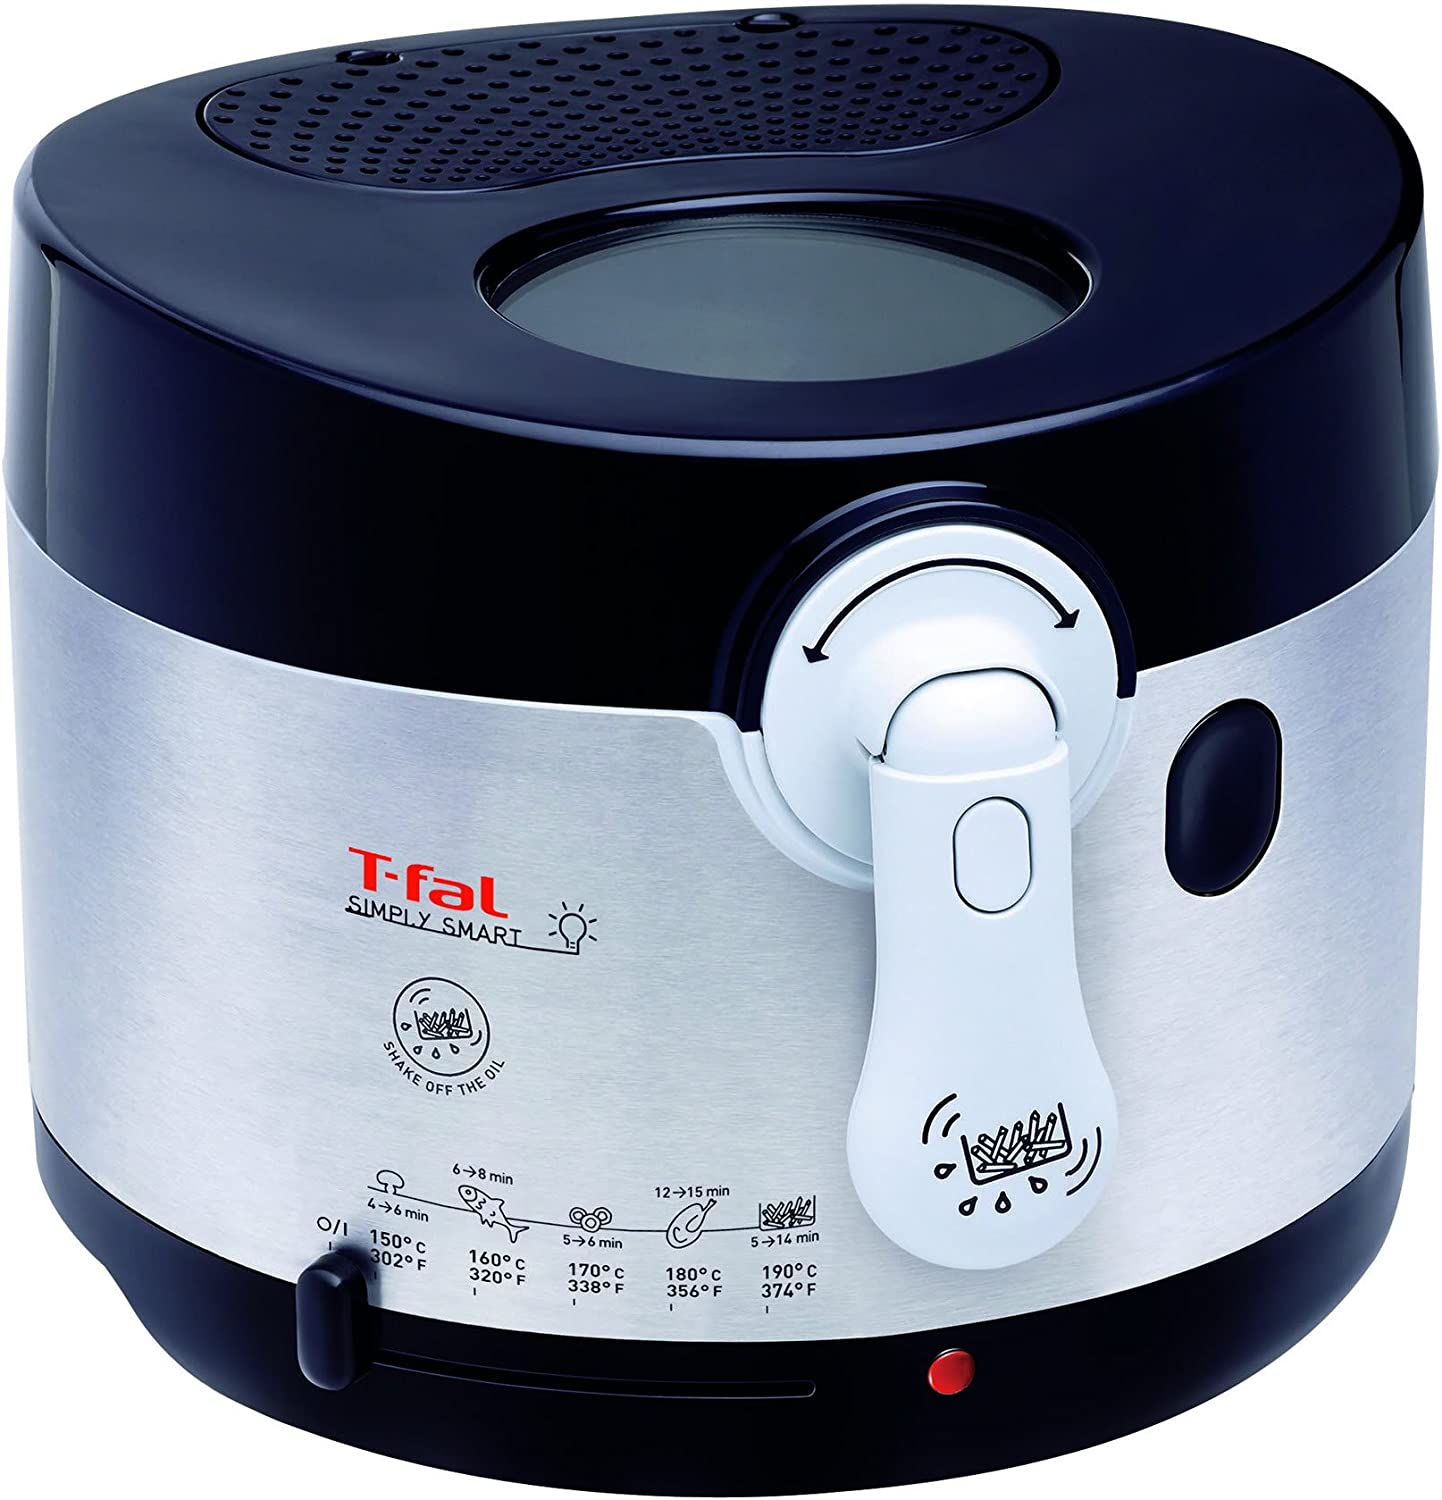 T-fal Simply Smart 2.65-Pound Cool Touch Deep Fryer